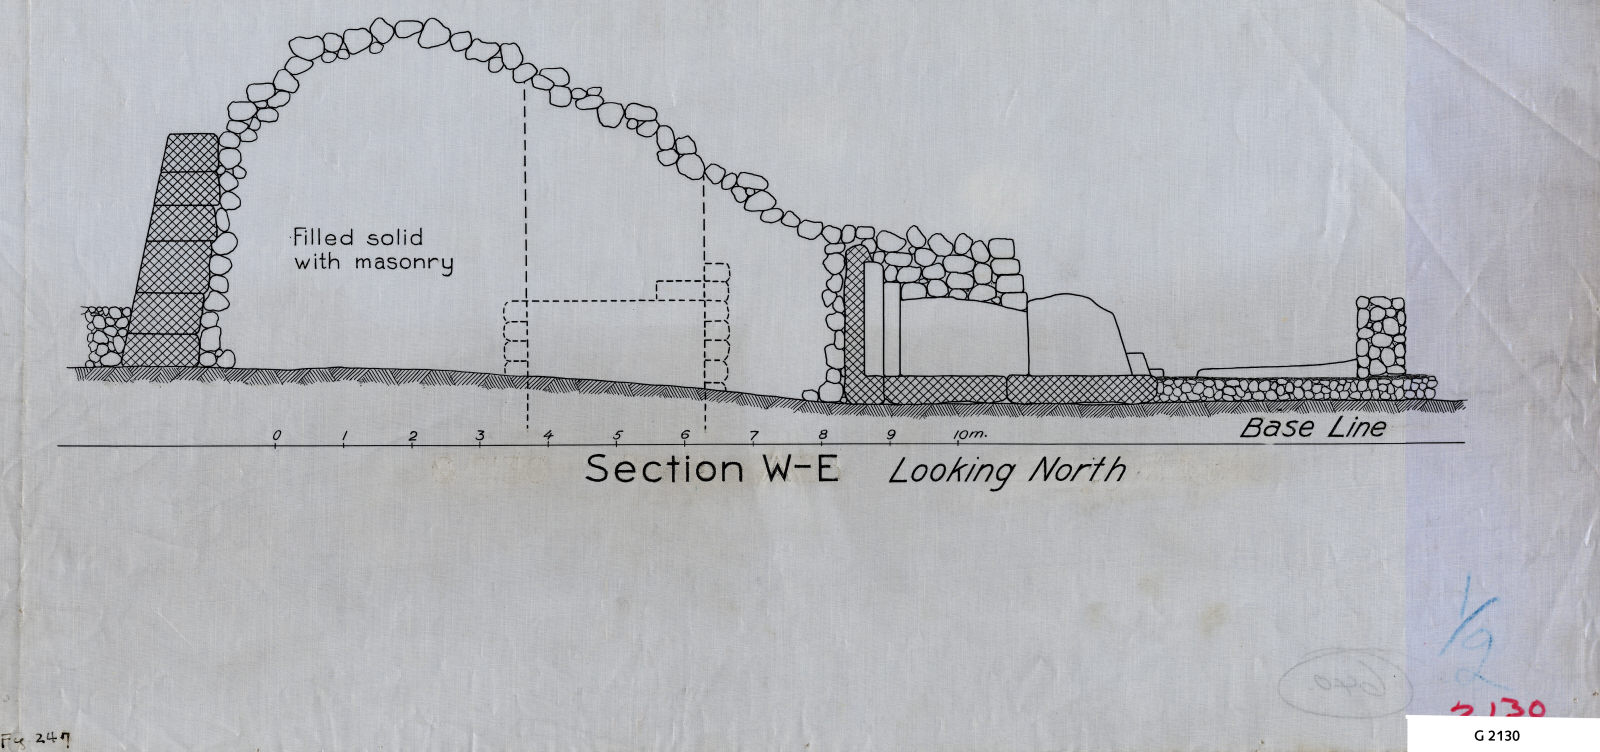 Maps and plans: G 2130, Section W-E looking N